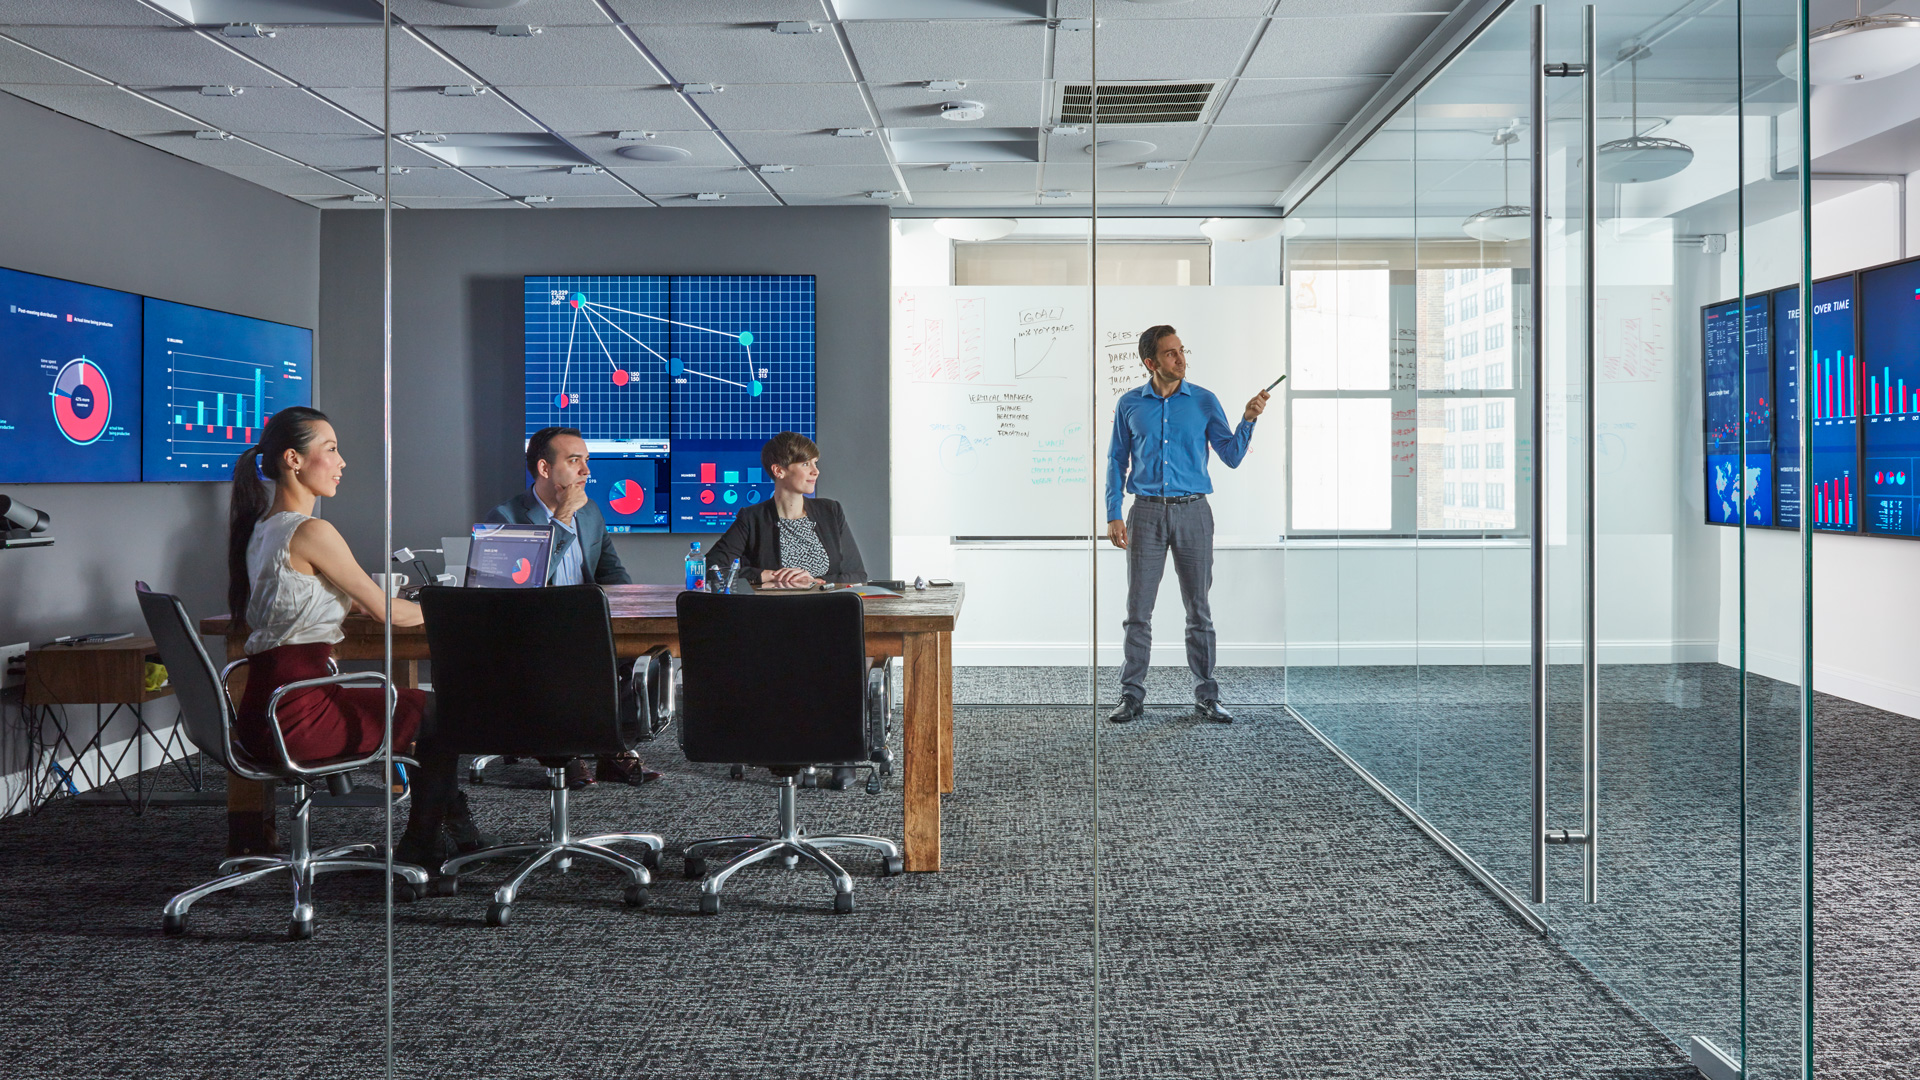 Mezzanine from Oblong Industries: a conference room with many high resolution screens and points of input